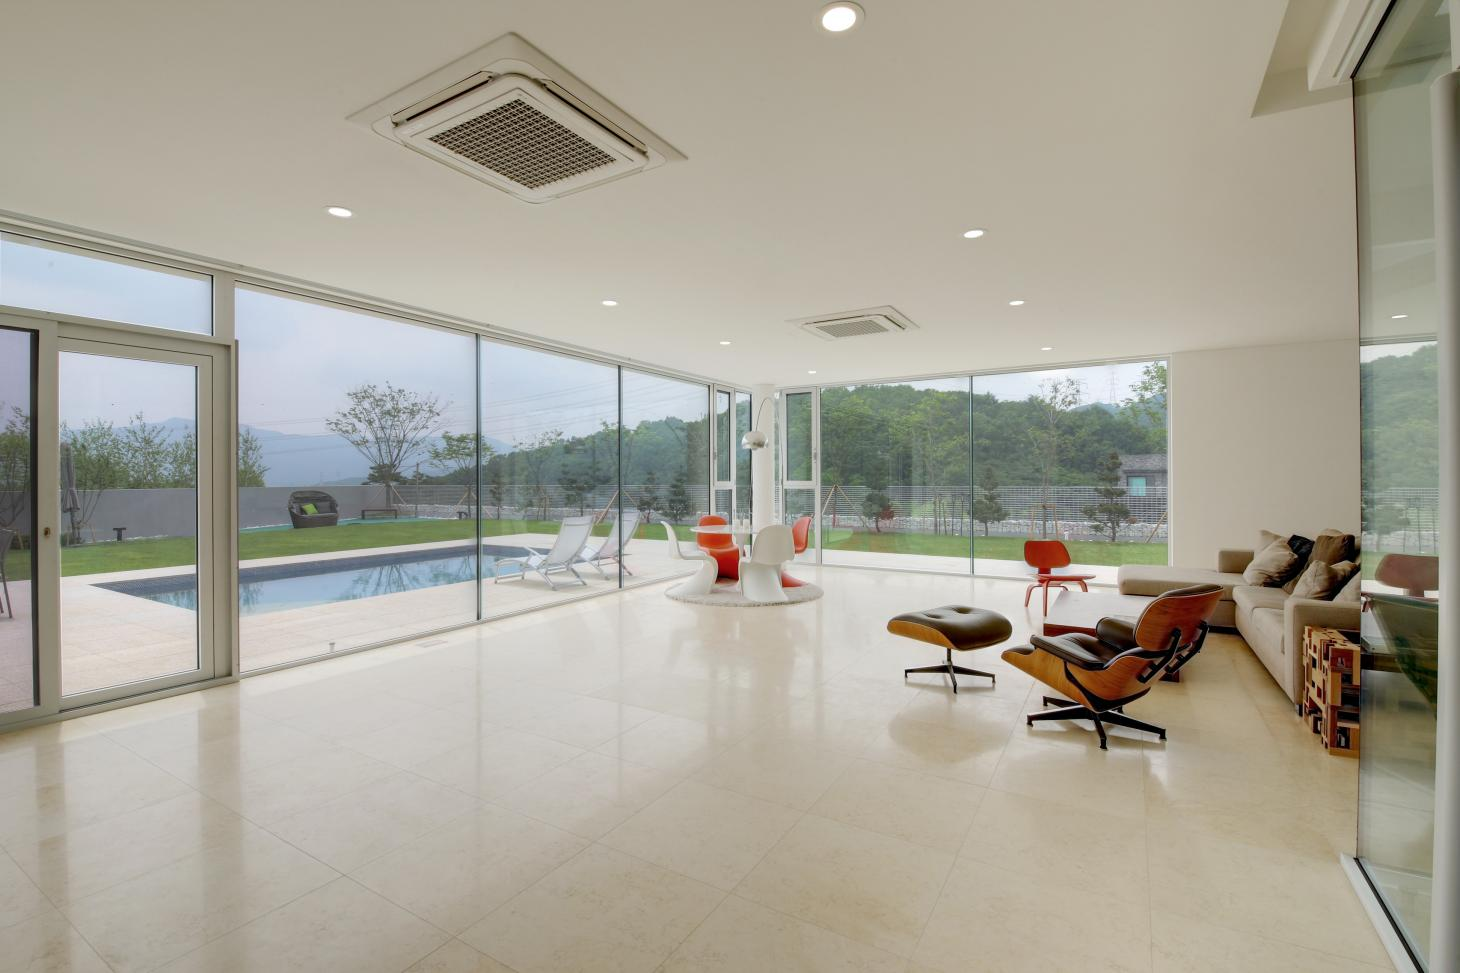 South Korean rounded house's vast minimalist white living space